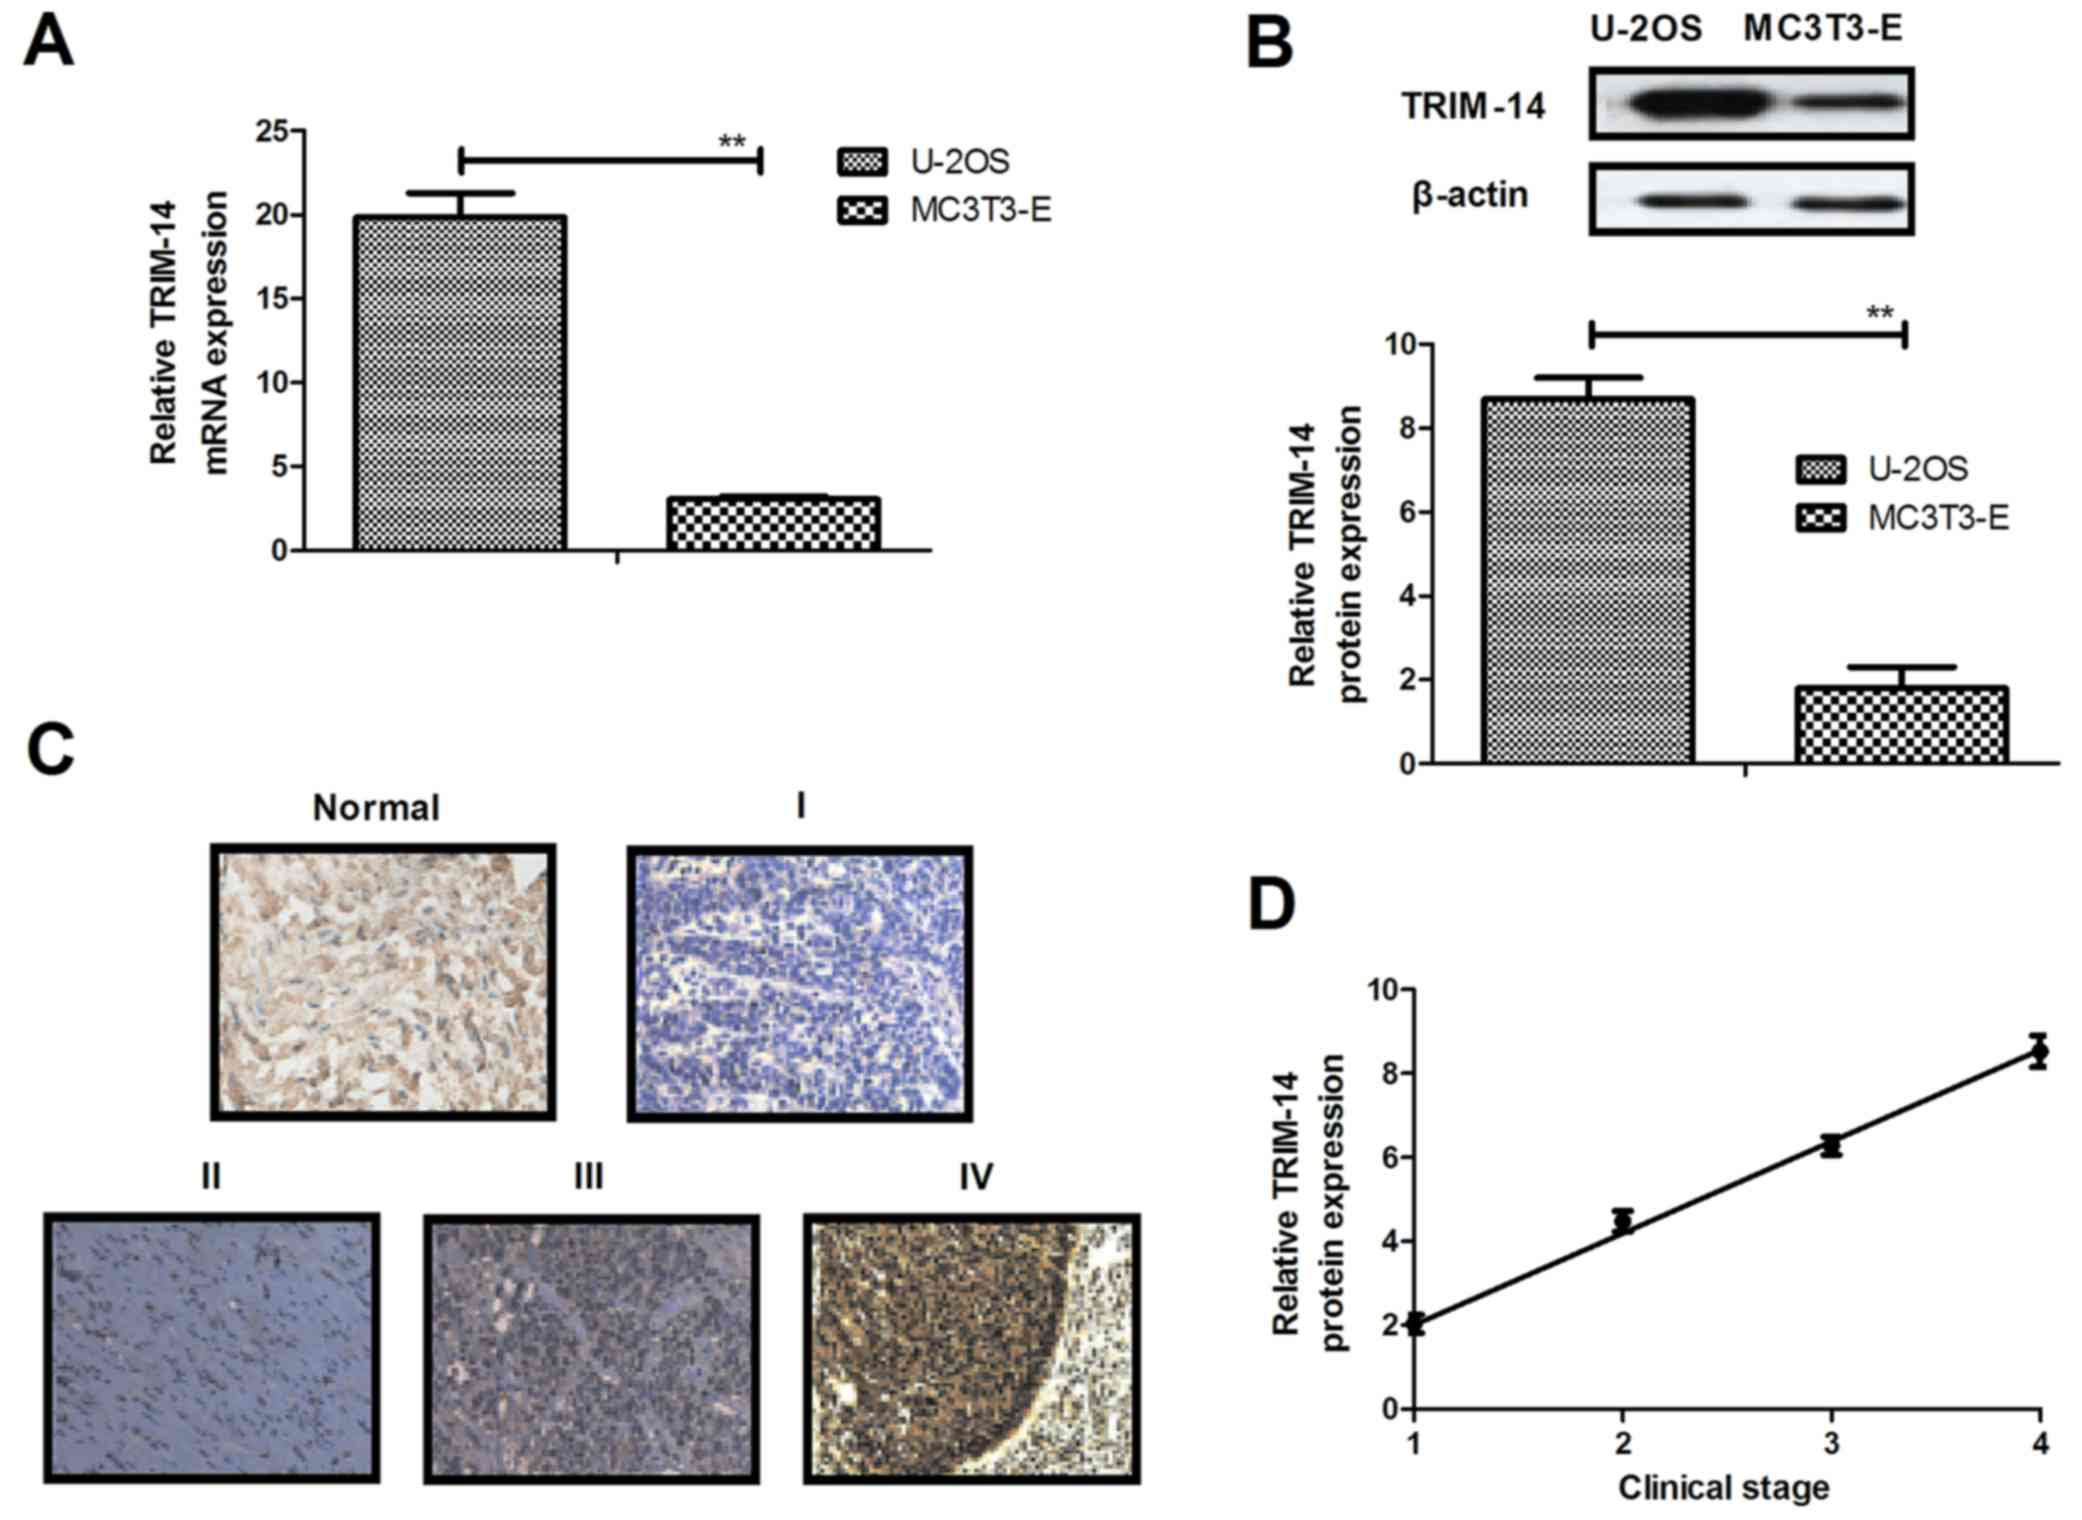 Target therapy of TRIM-14 inhibits osteosarcoma